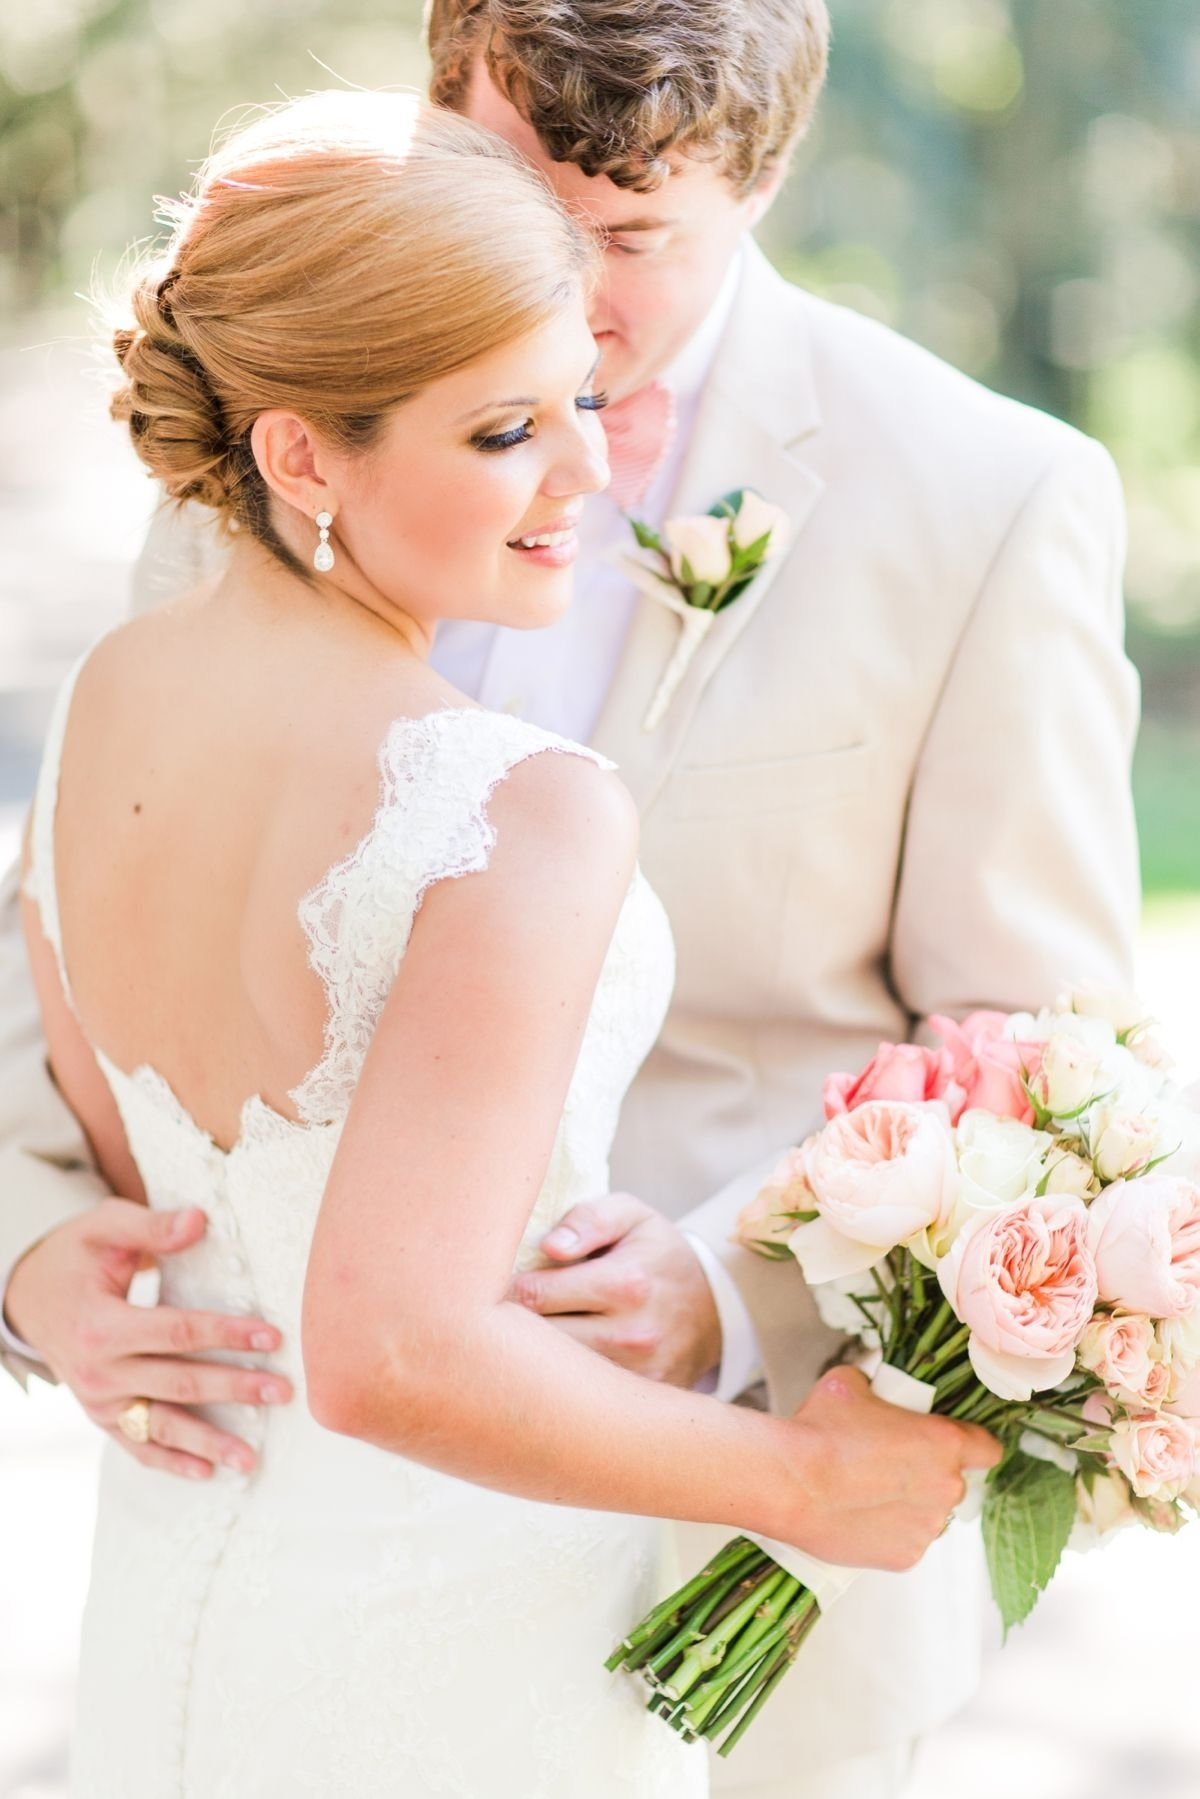 10 Attractive Bride And Groom Photo Ideas bride and groom poses and portraits ideas southern charleston 2020